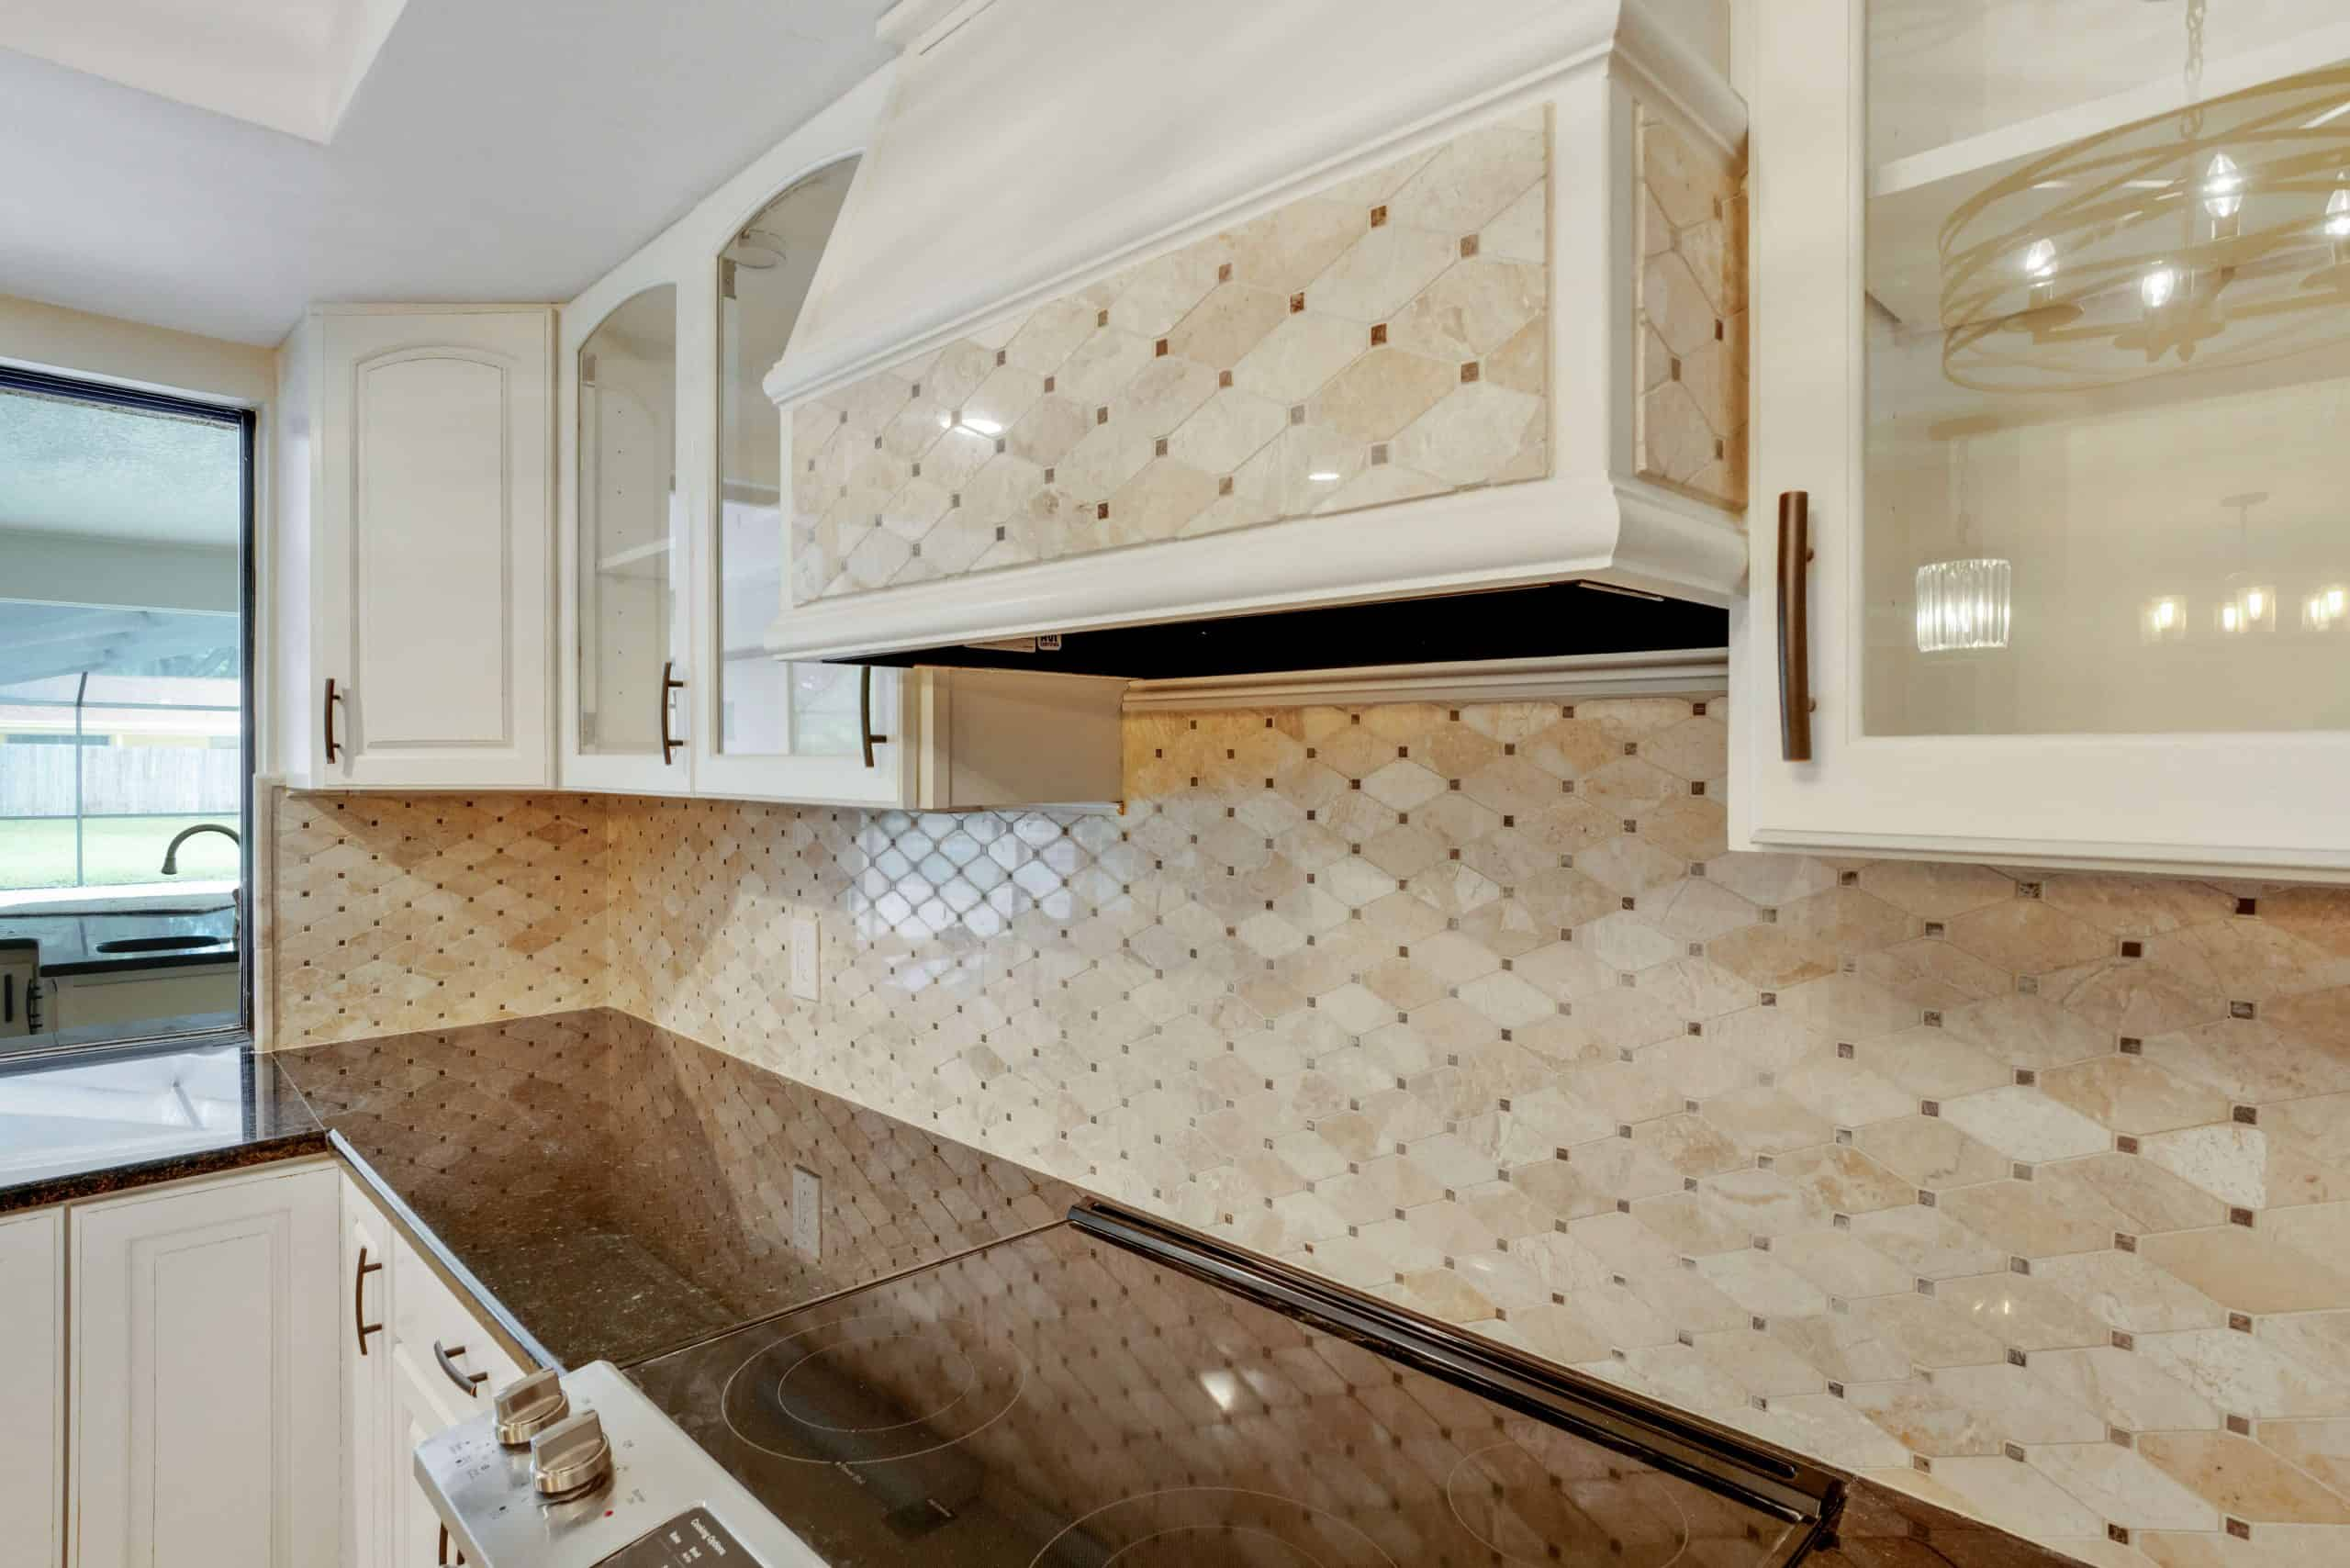 Kitchen-Remodel-featuring-Mosaic-Tile